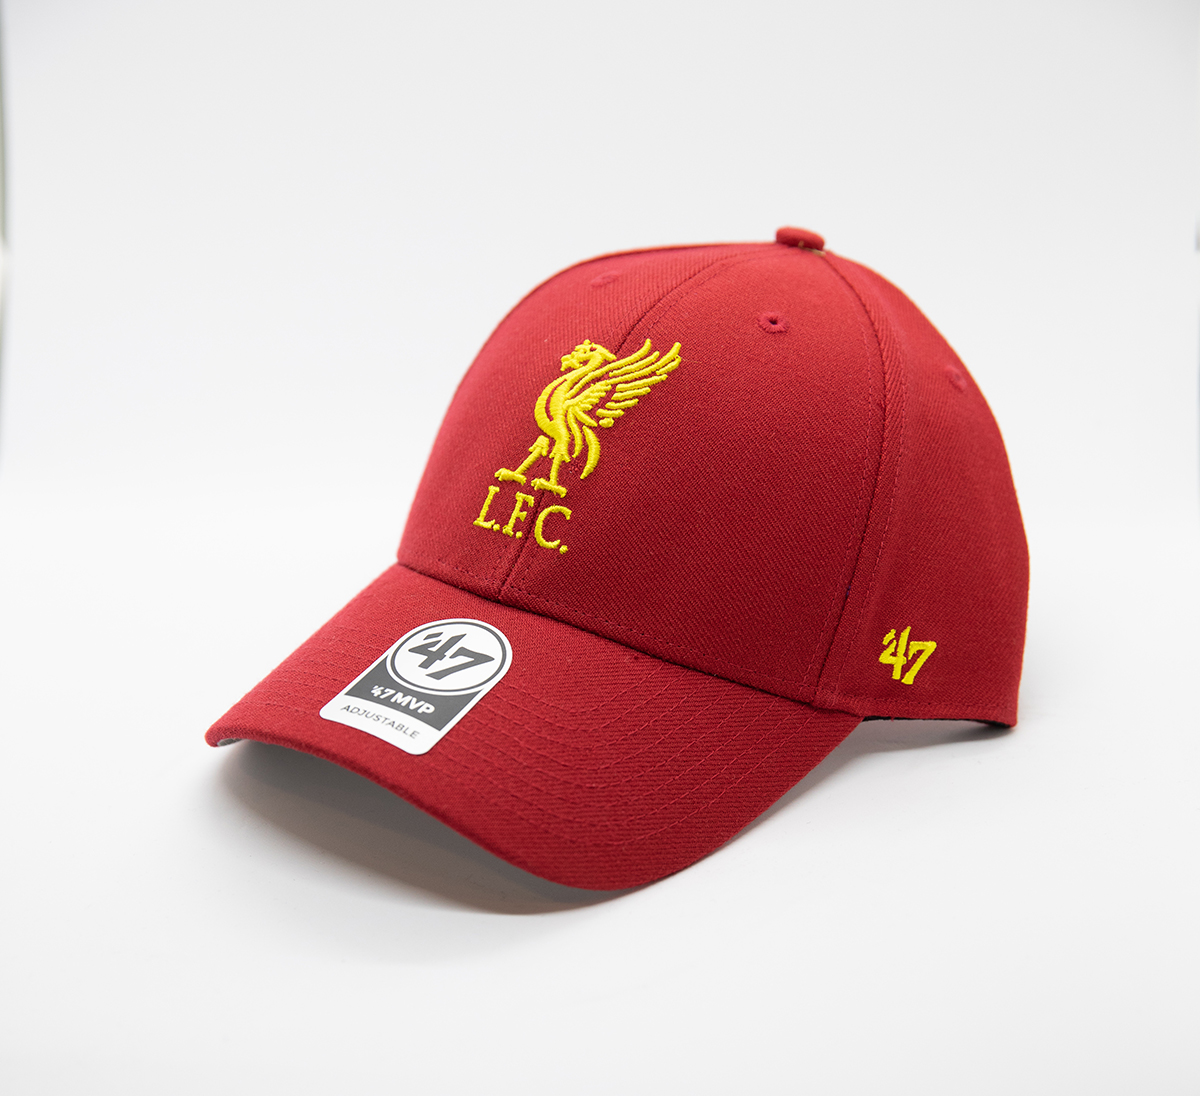 83989982379 47 Brand - EPL Liverpool Fc - KINGZ BOUTIQUE HIP HOP STREETWEAR FOR ...